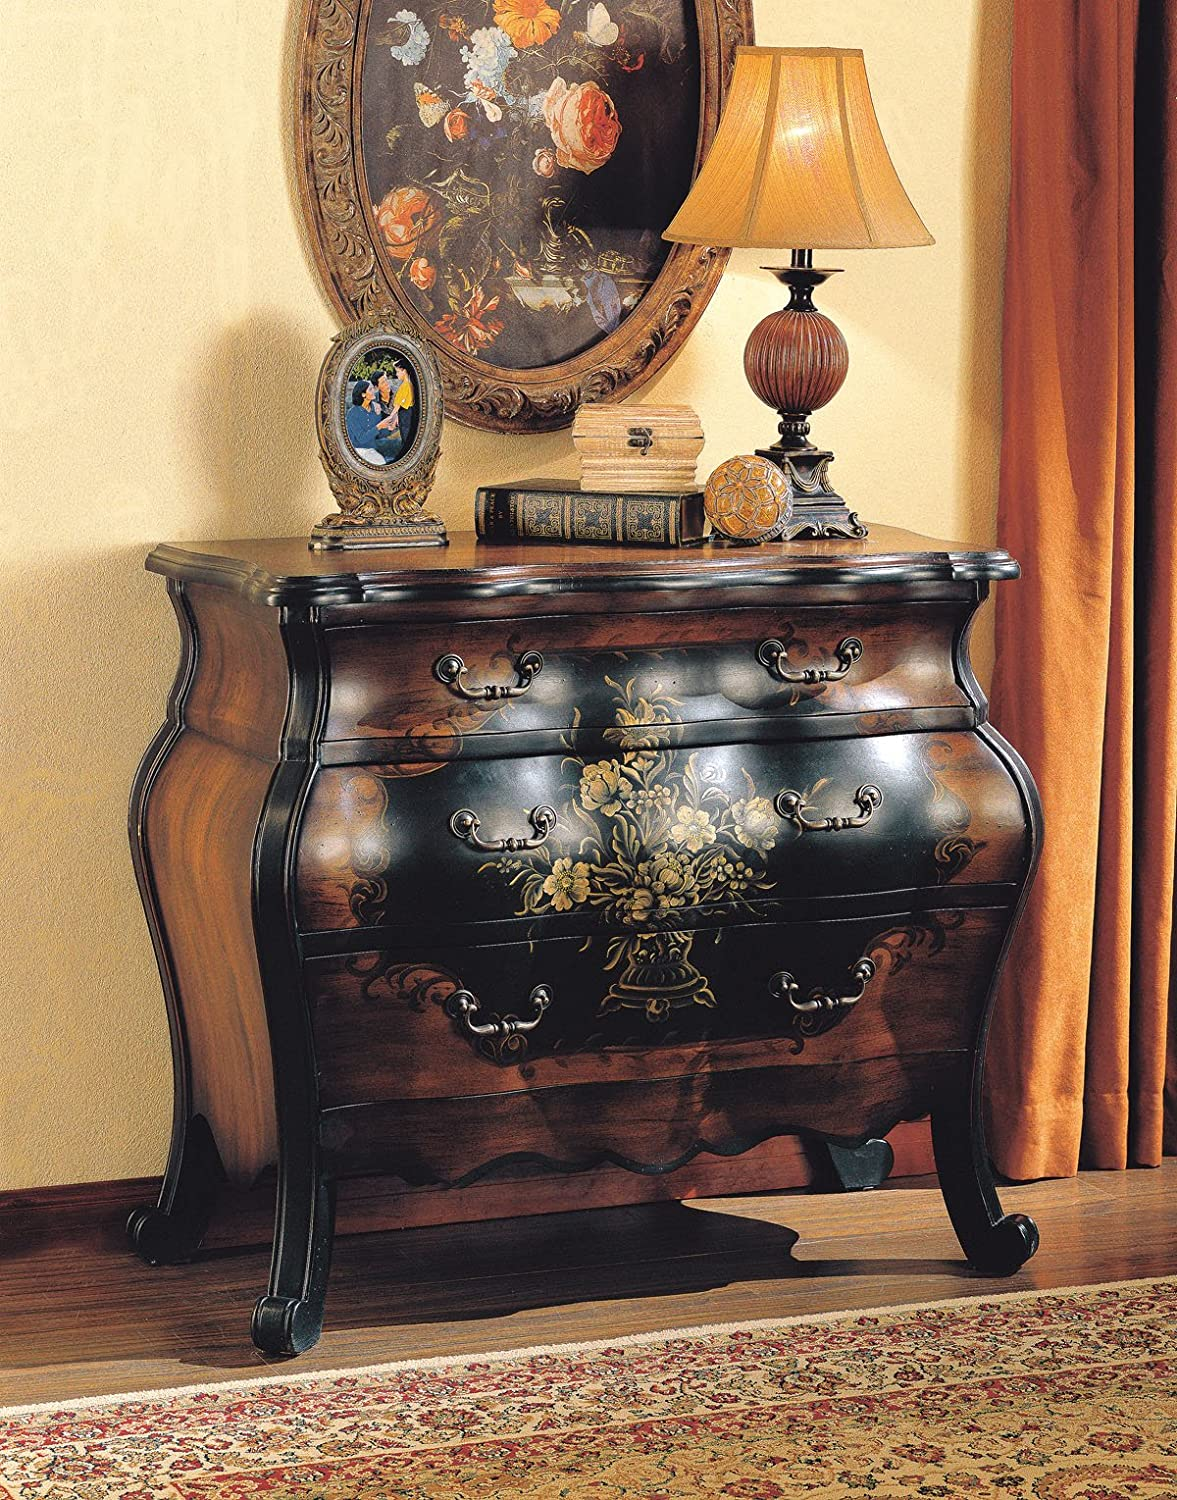 langford dining canada hamilton best rooms furniture cupboard bombaycanada bombay by table chairs pinterest on images